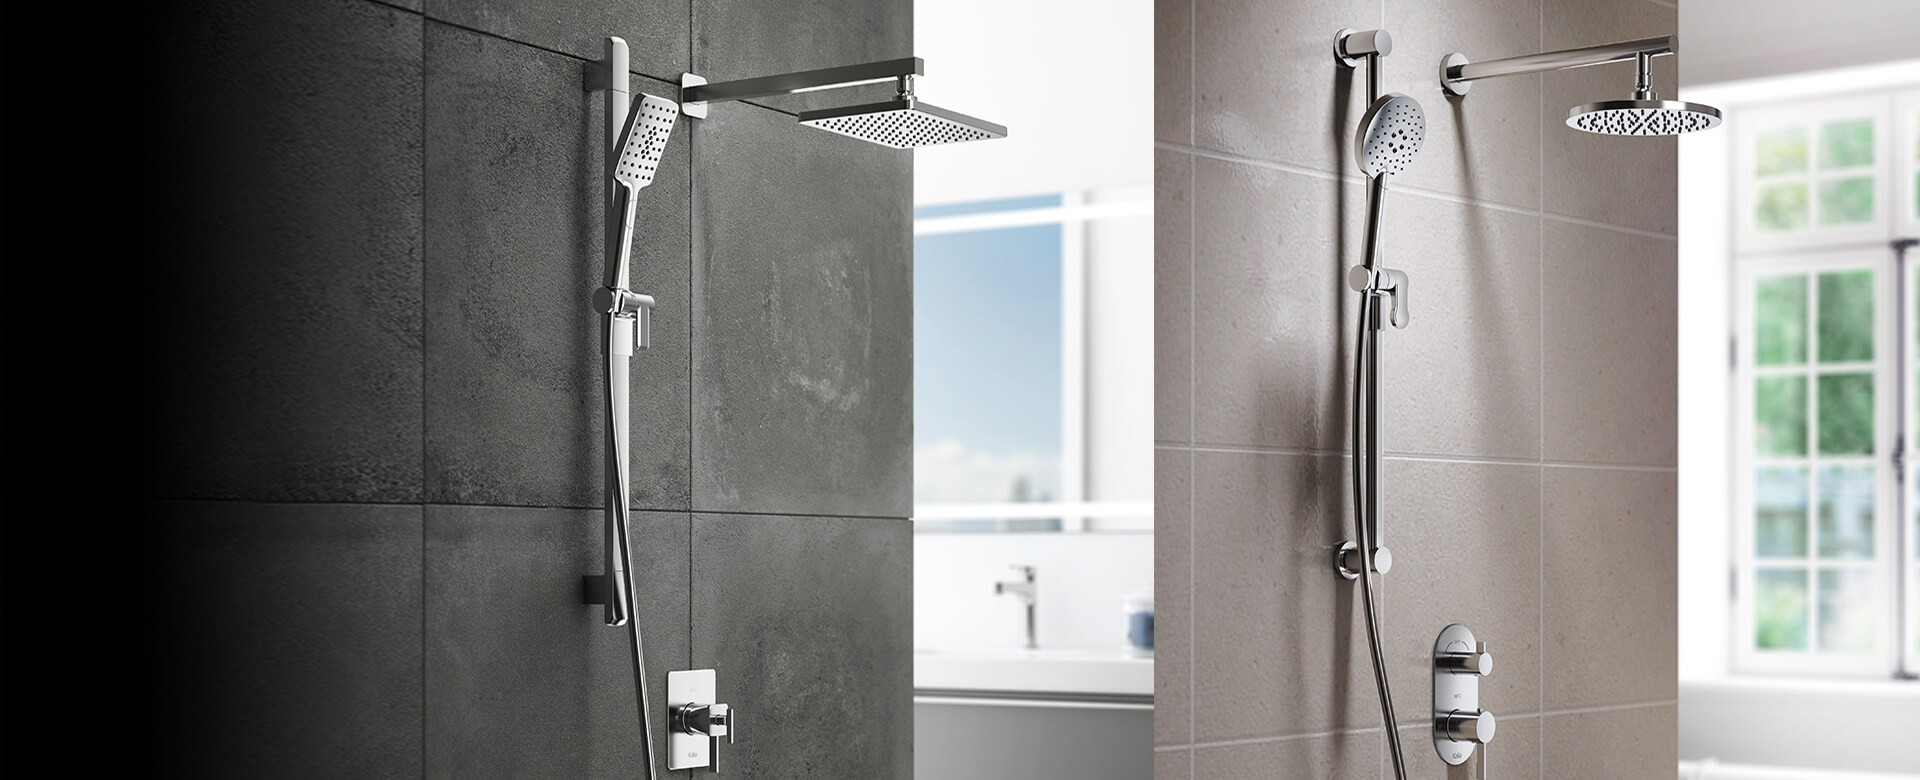 NEW: RoundOne & SquareOne SHOWER SYSTEMS